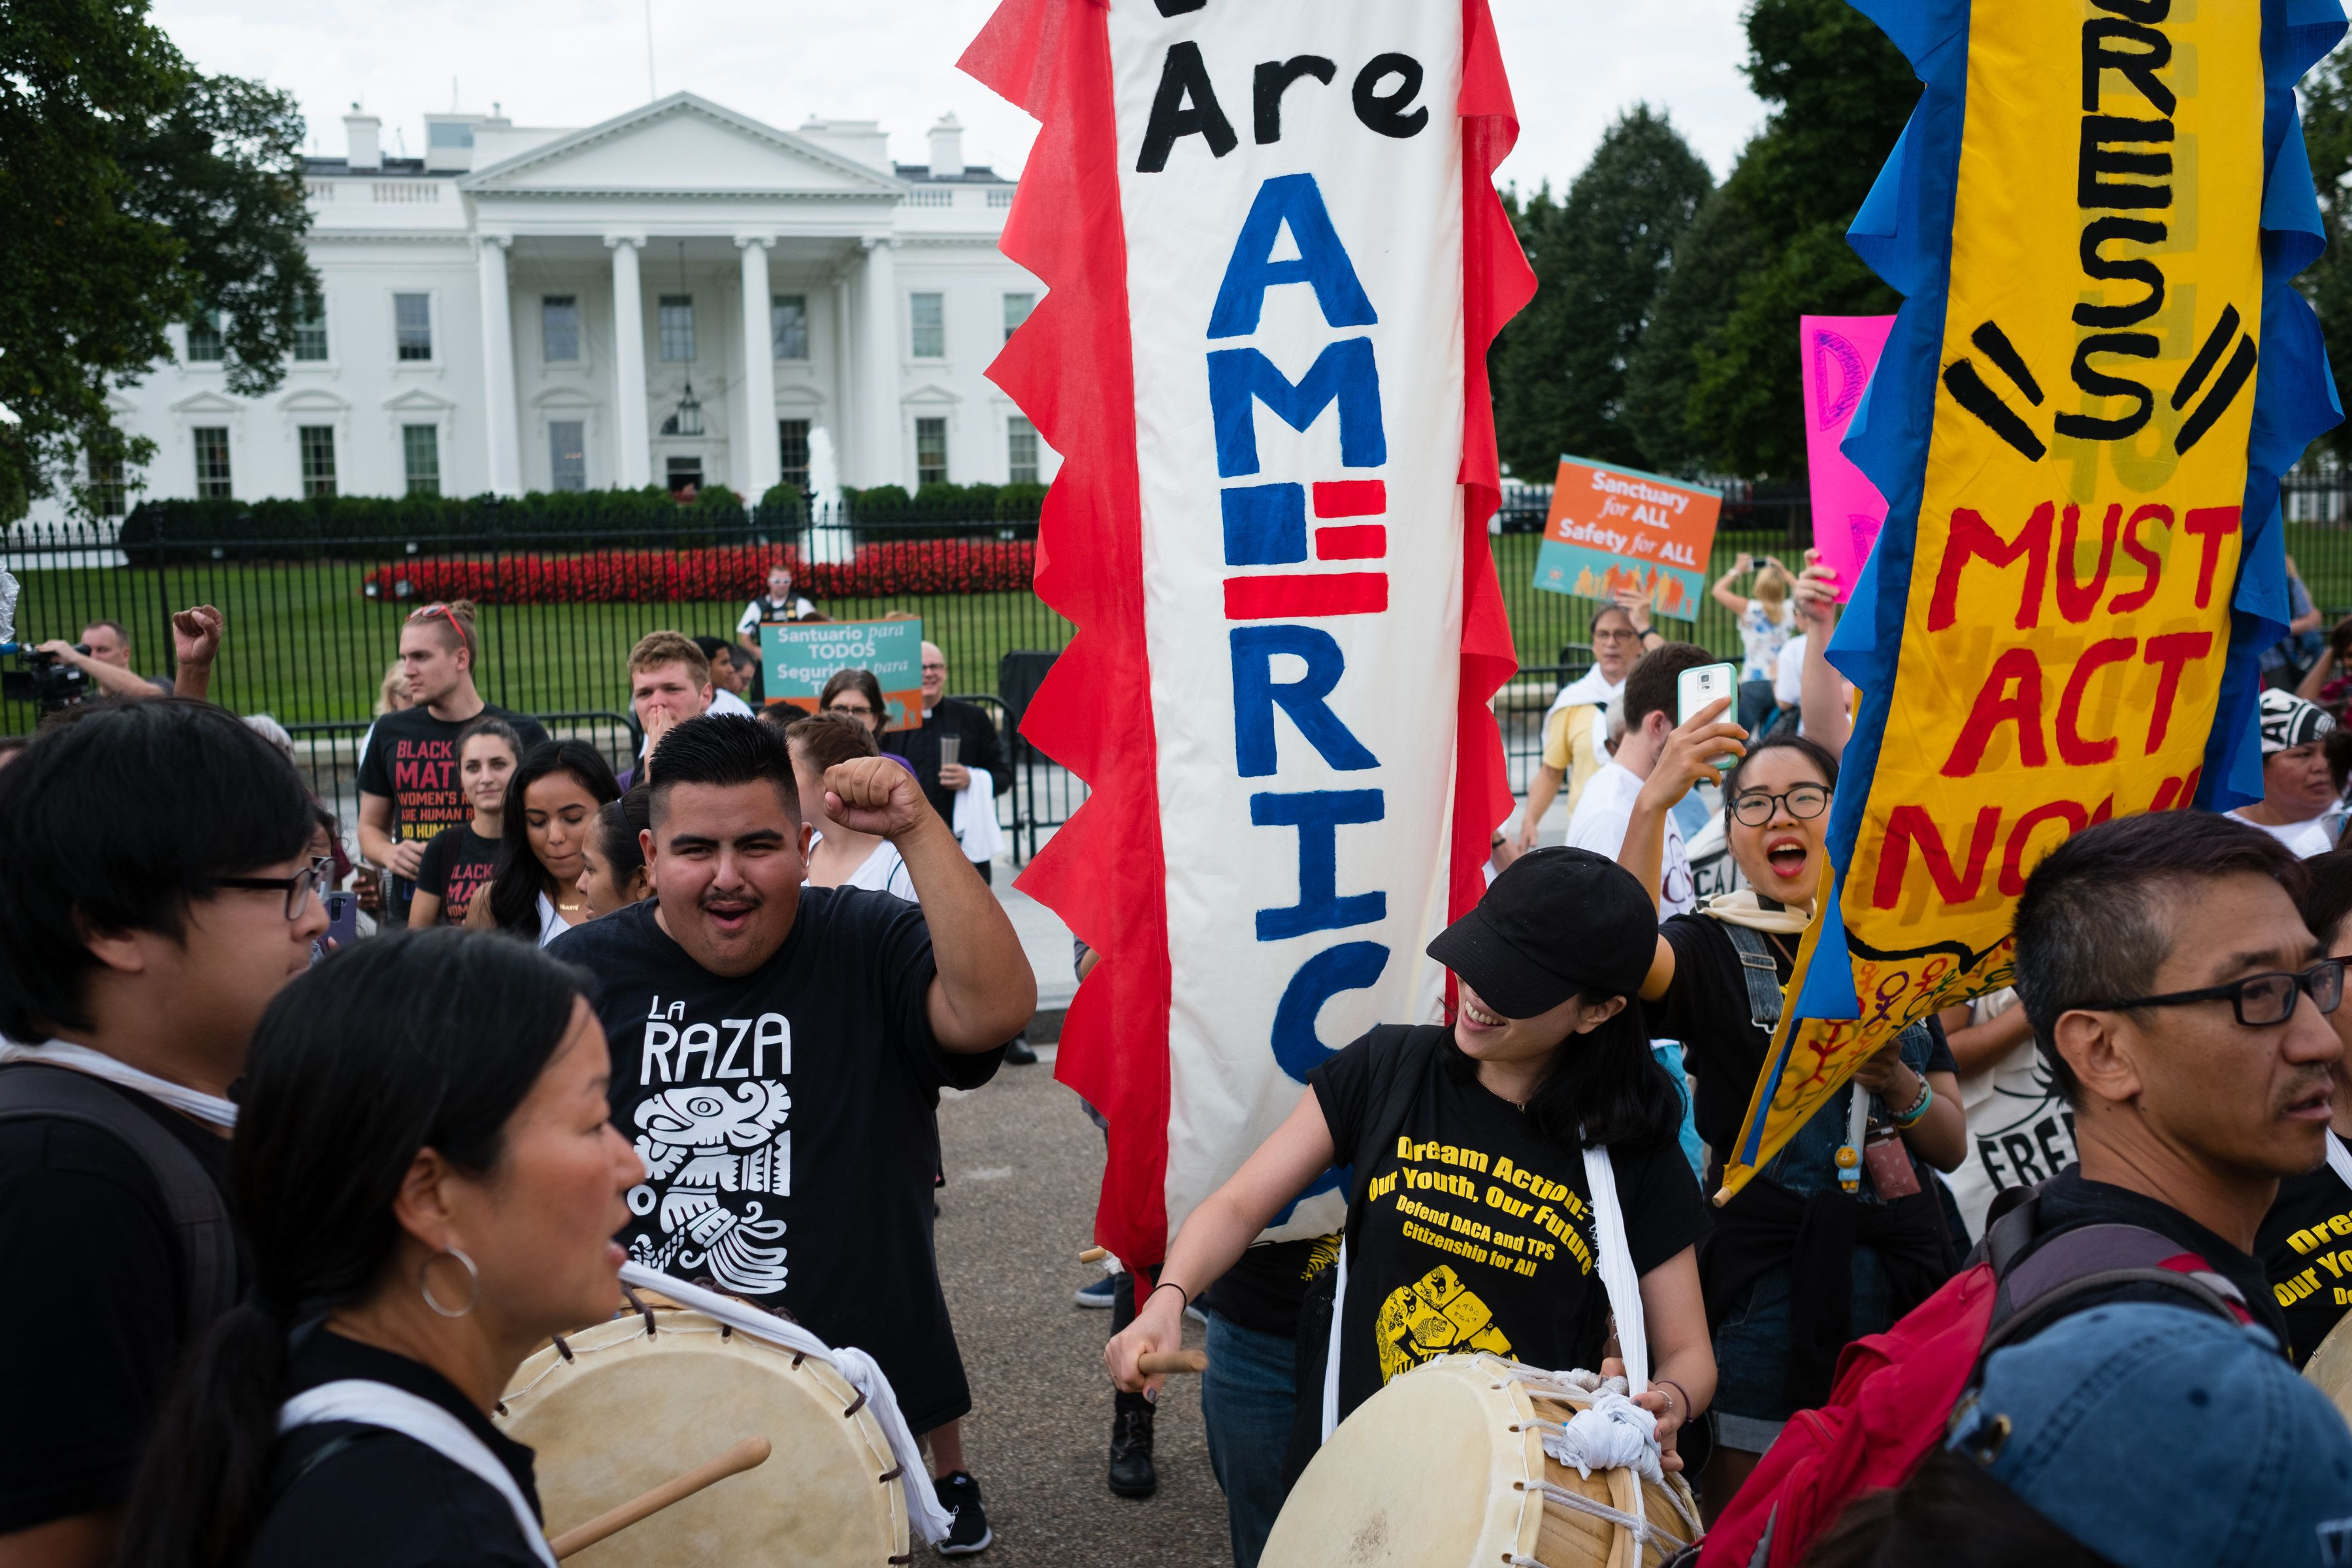 WASHINGTON, DC - SEPTEMBER 5:  Hundreds of immigrant advocates gathered at the White House on Tuesday, September 5, 2017 to defend DACA and TPS. (Photo by Sarah L. Voisin/The Washington Post via Getty Images)